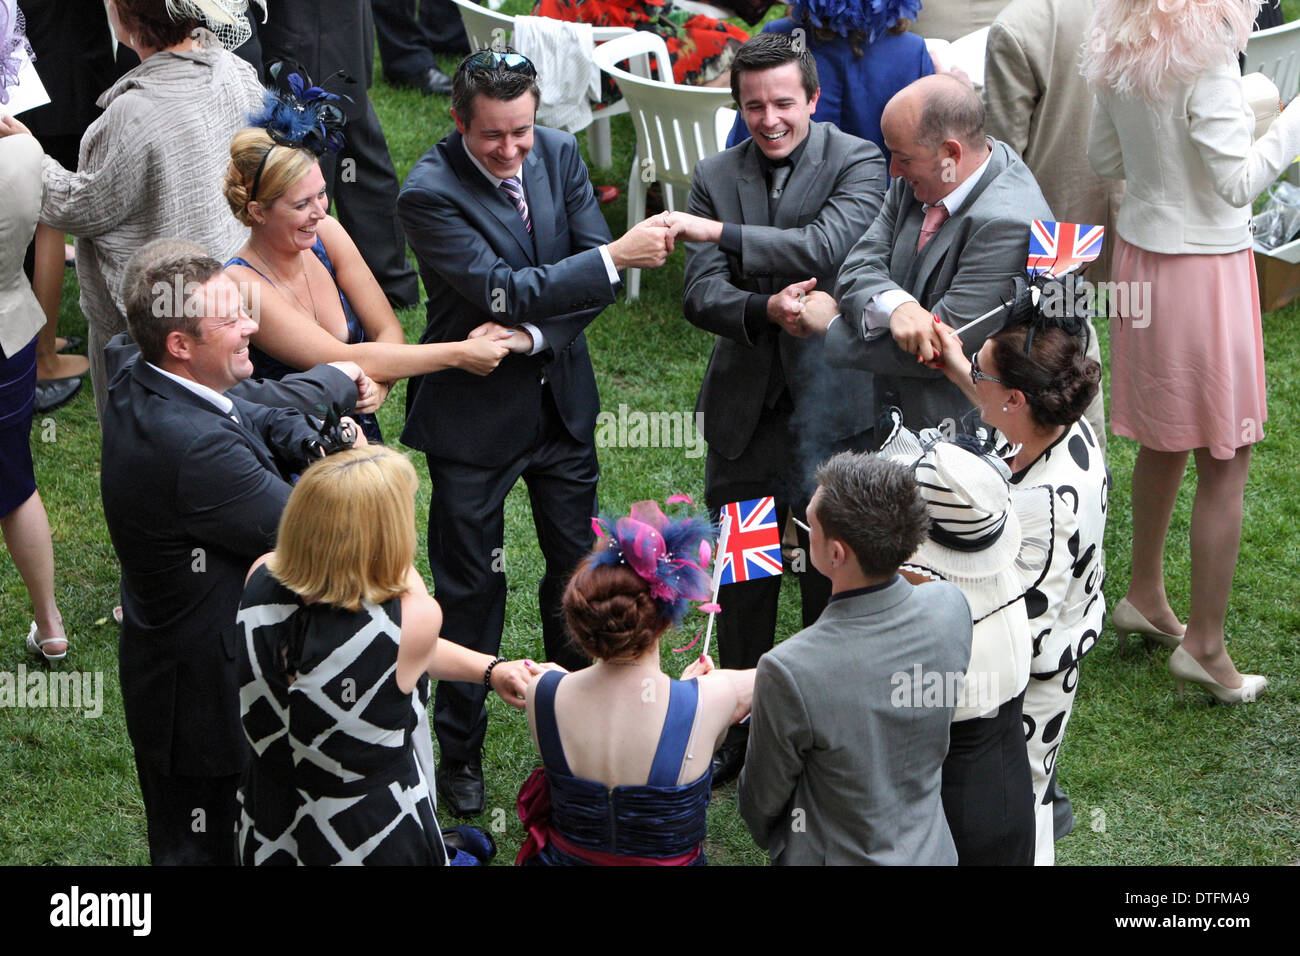 new styles 01c27 c4519 Ascot, United Kingdom, men and women form a circle and hold hands at the